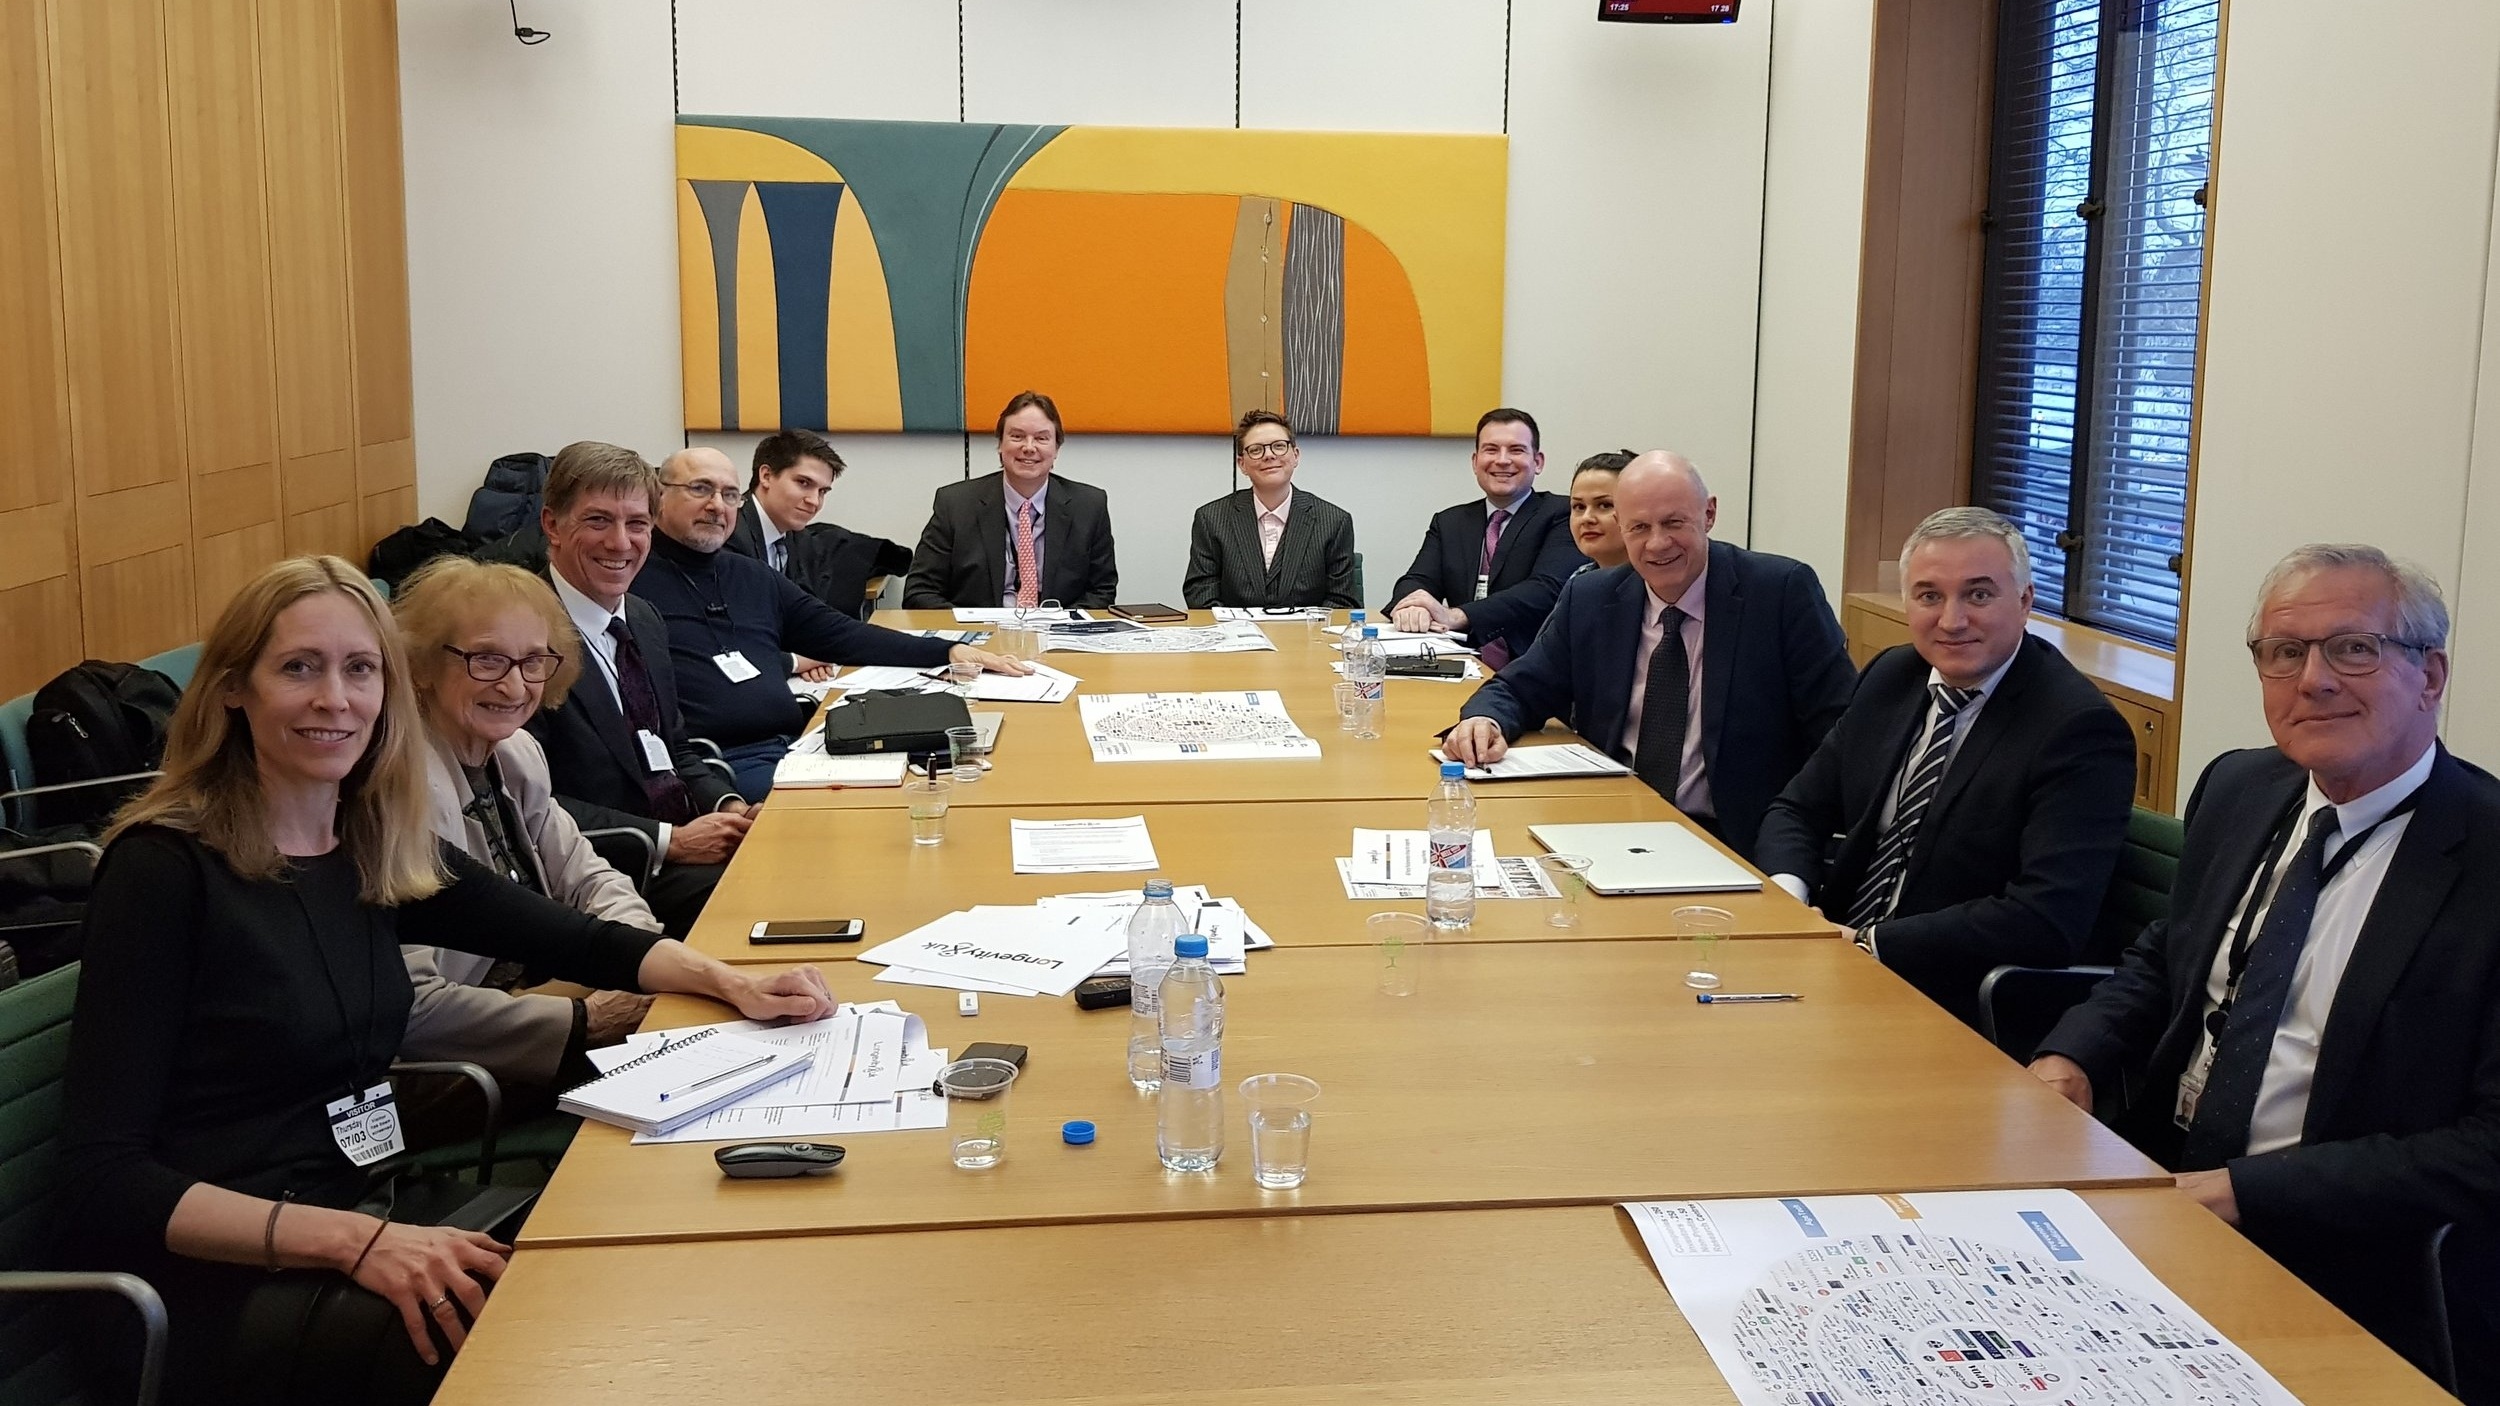 Inaugural Meeting of All Party Parliamentary Group for Longevity, 7 March 2019